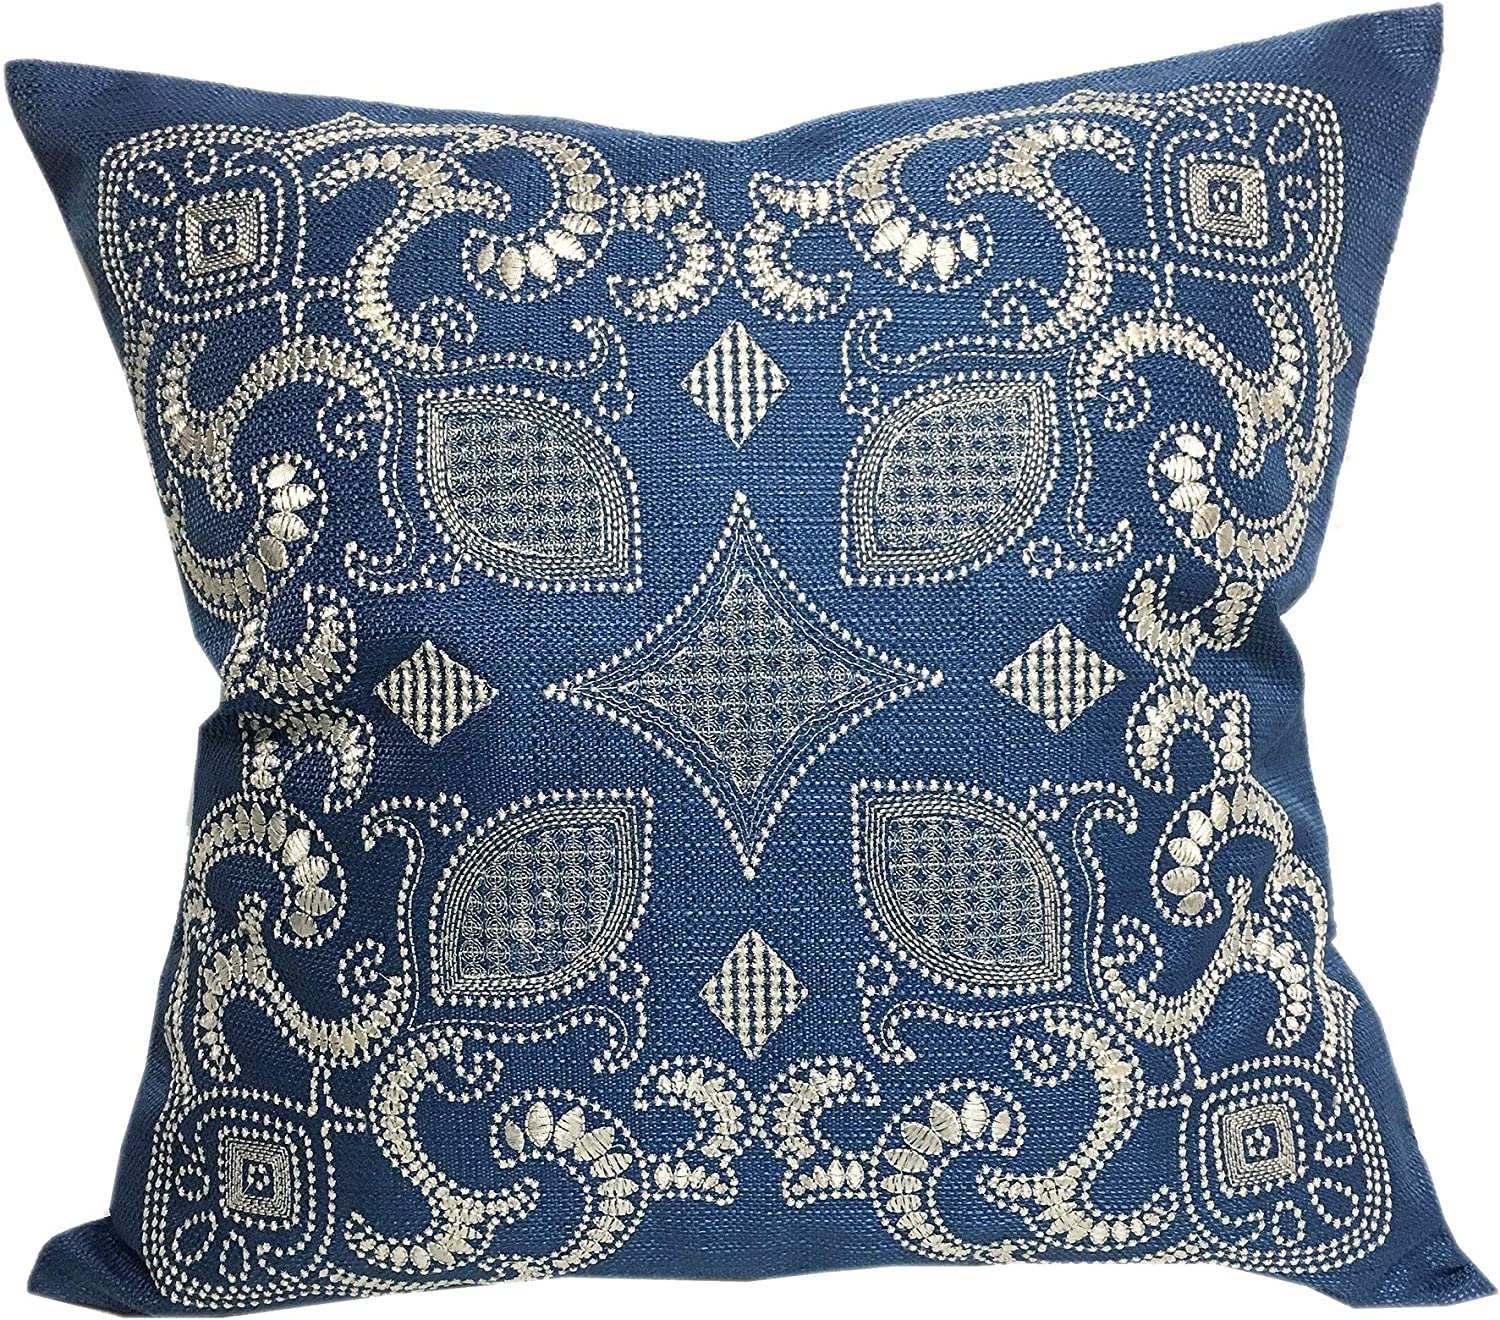 ACCENTHOME Home Accent Pillows Sapphire Blue 20-inch Woven Embroidered Throw Pillow